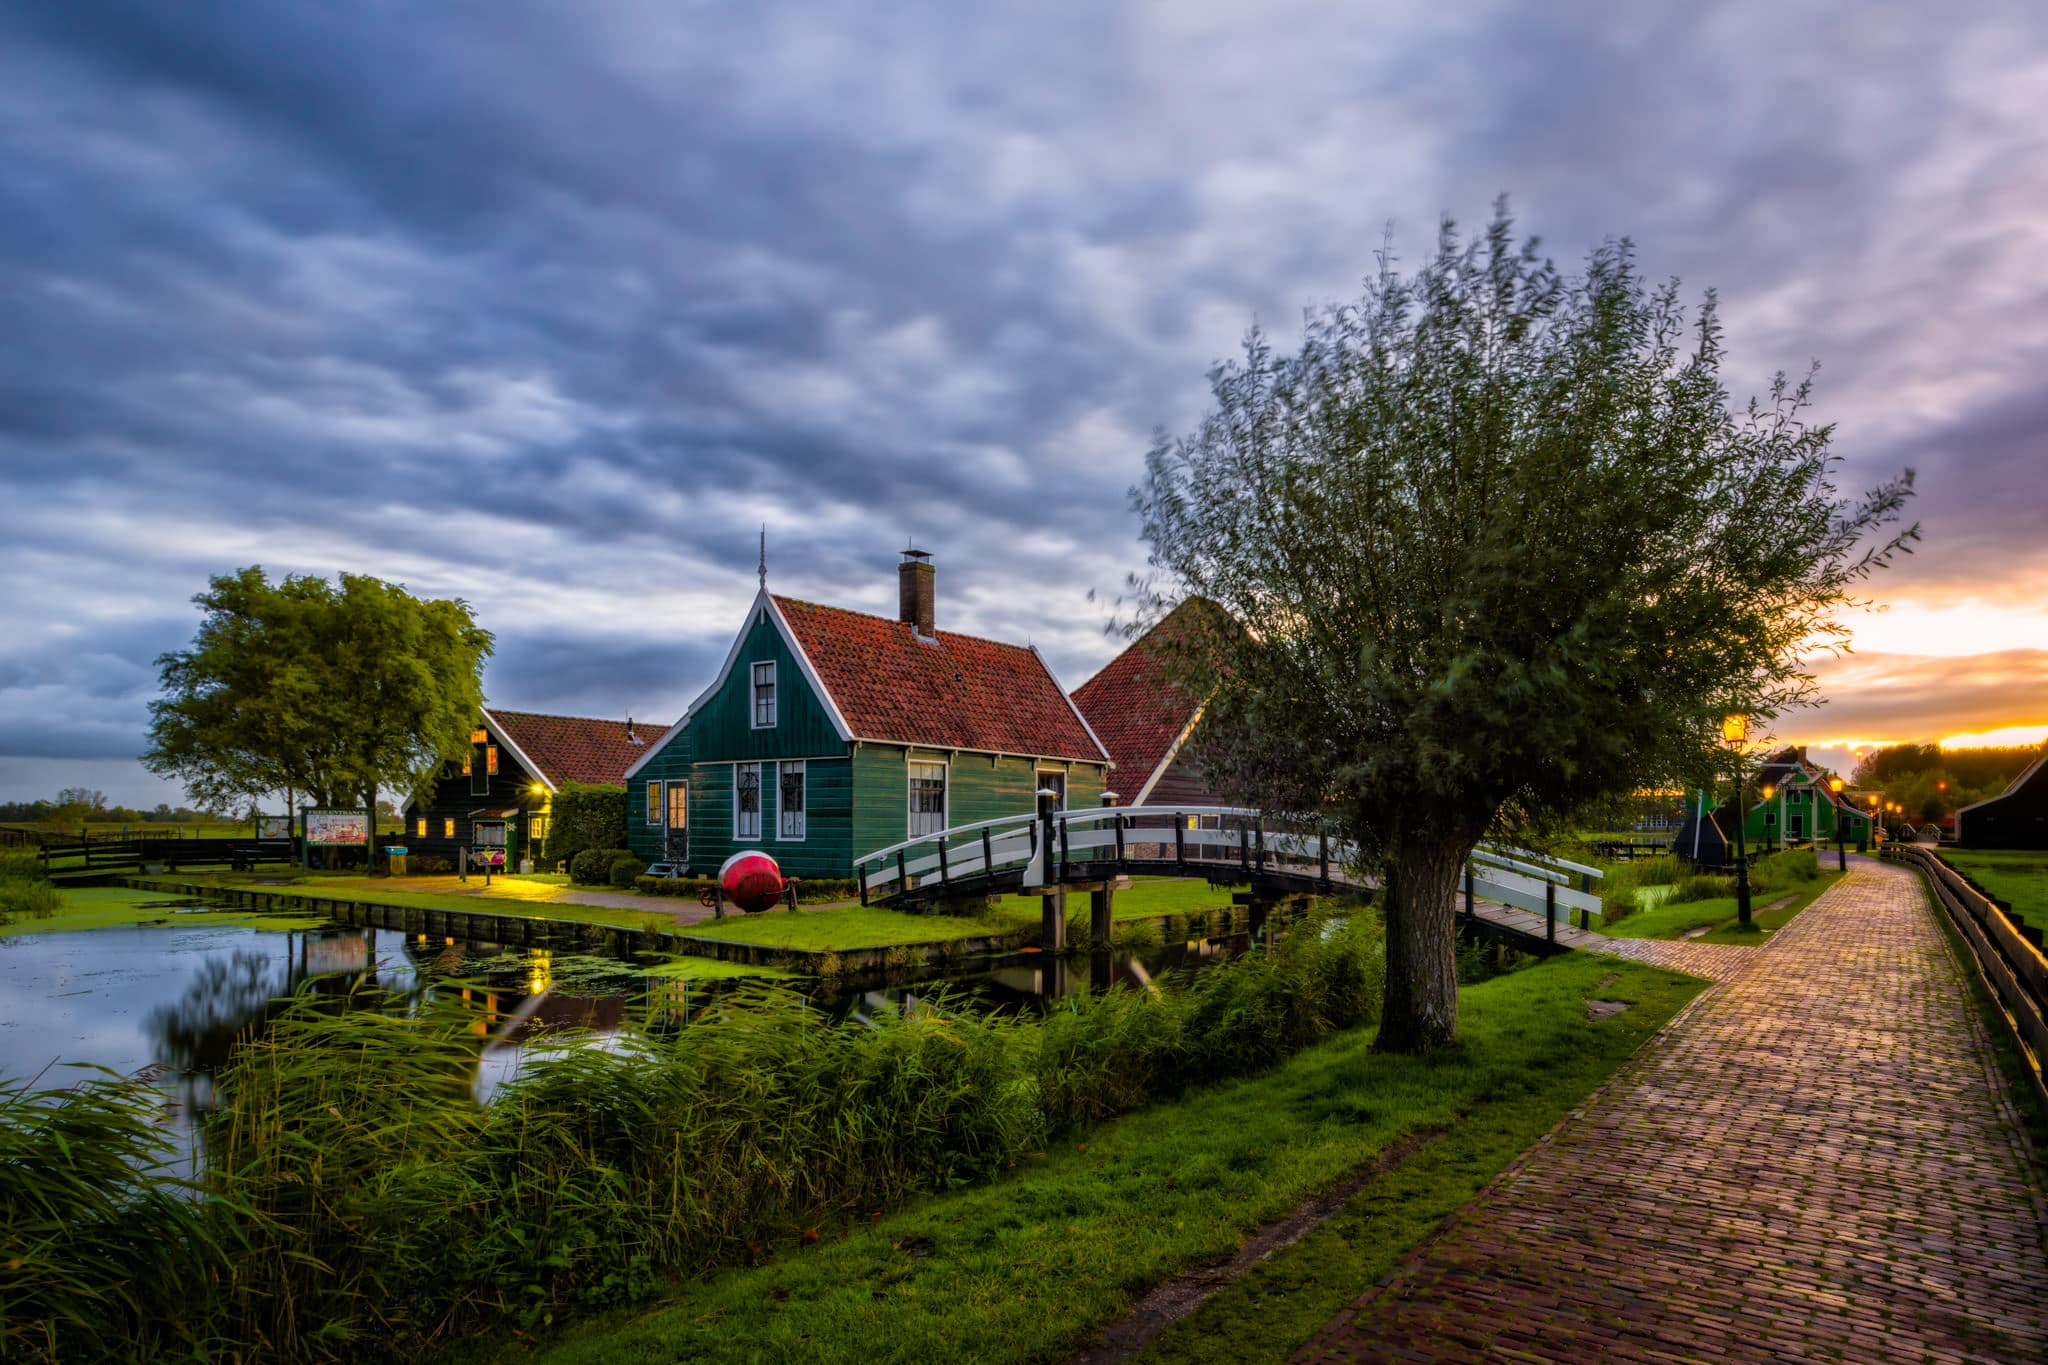 Zaanse Schans village in the Netherlands at sunrise.